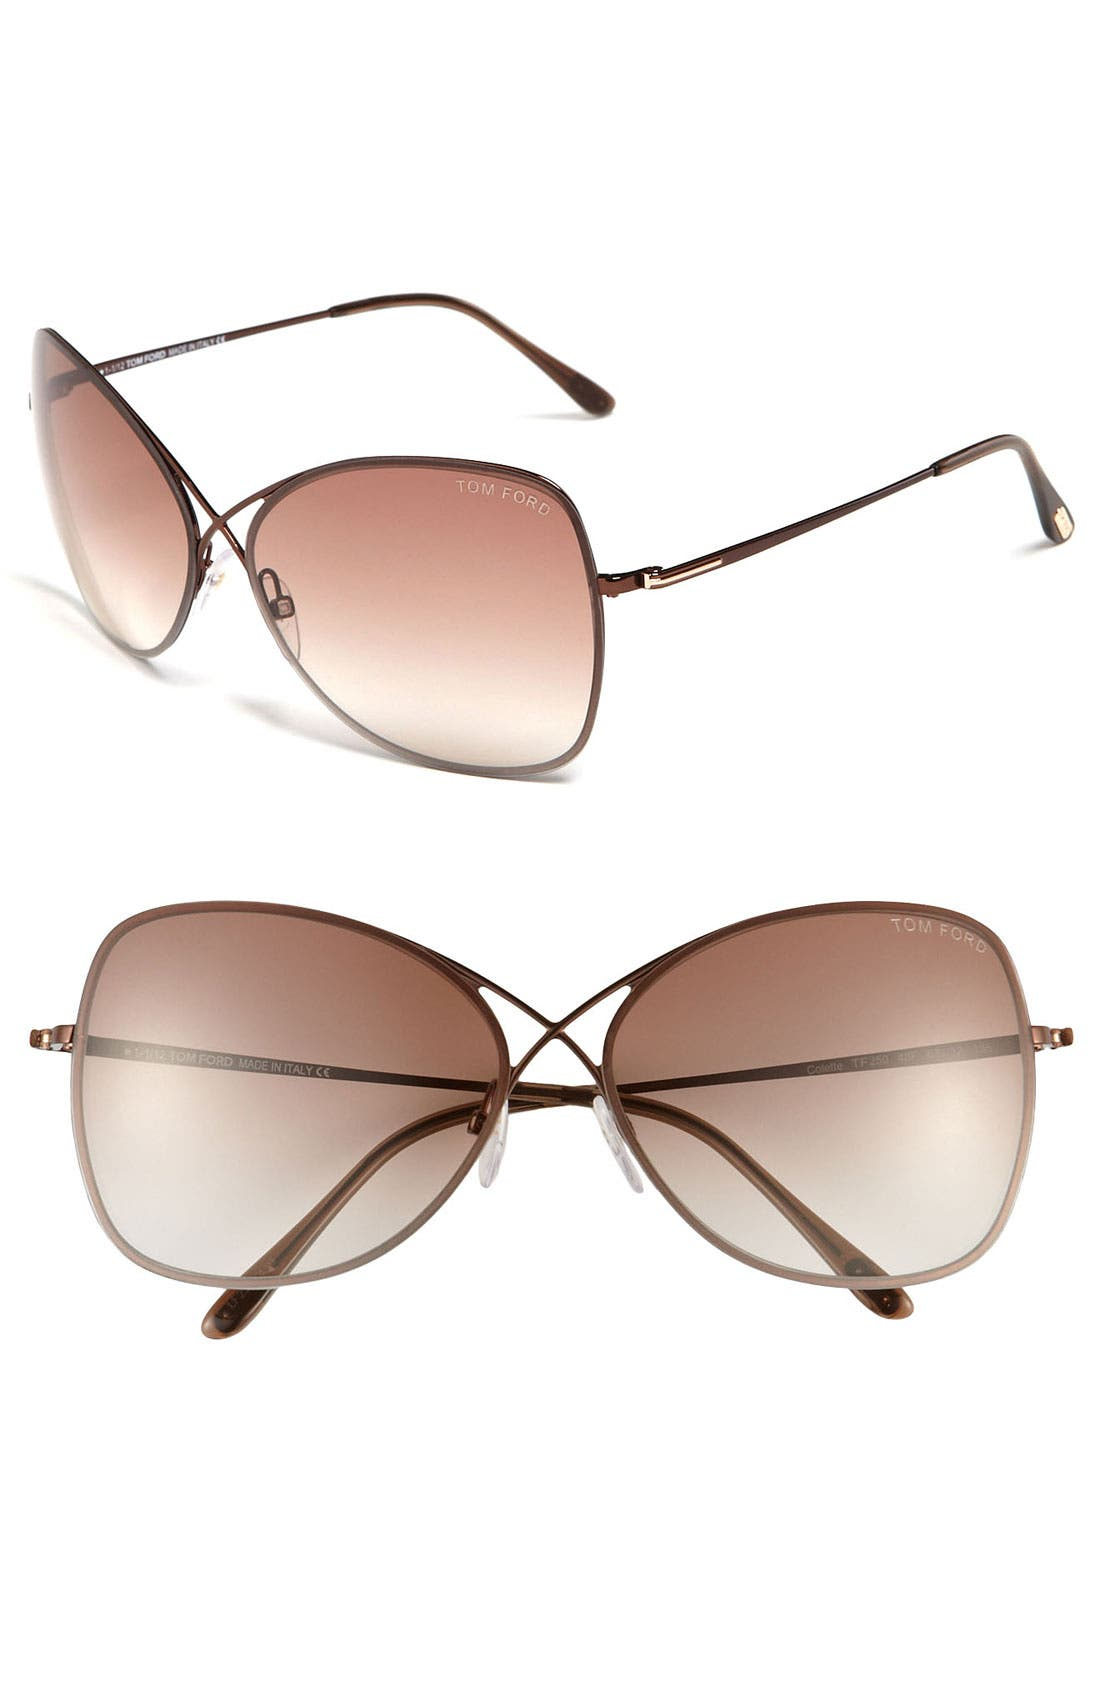 Tom Ford 'Colette' 63mm Oversized Sunglasses